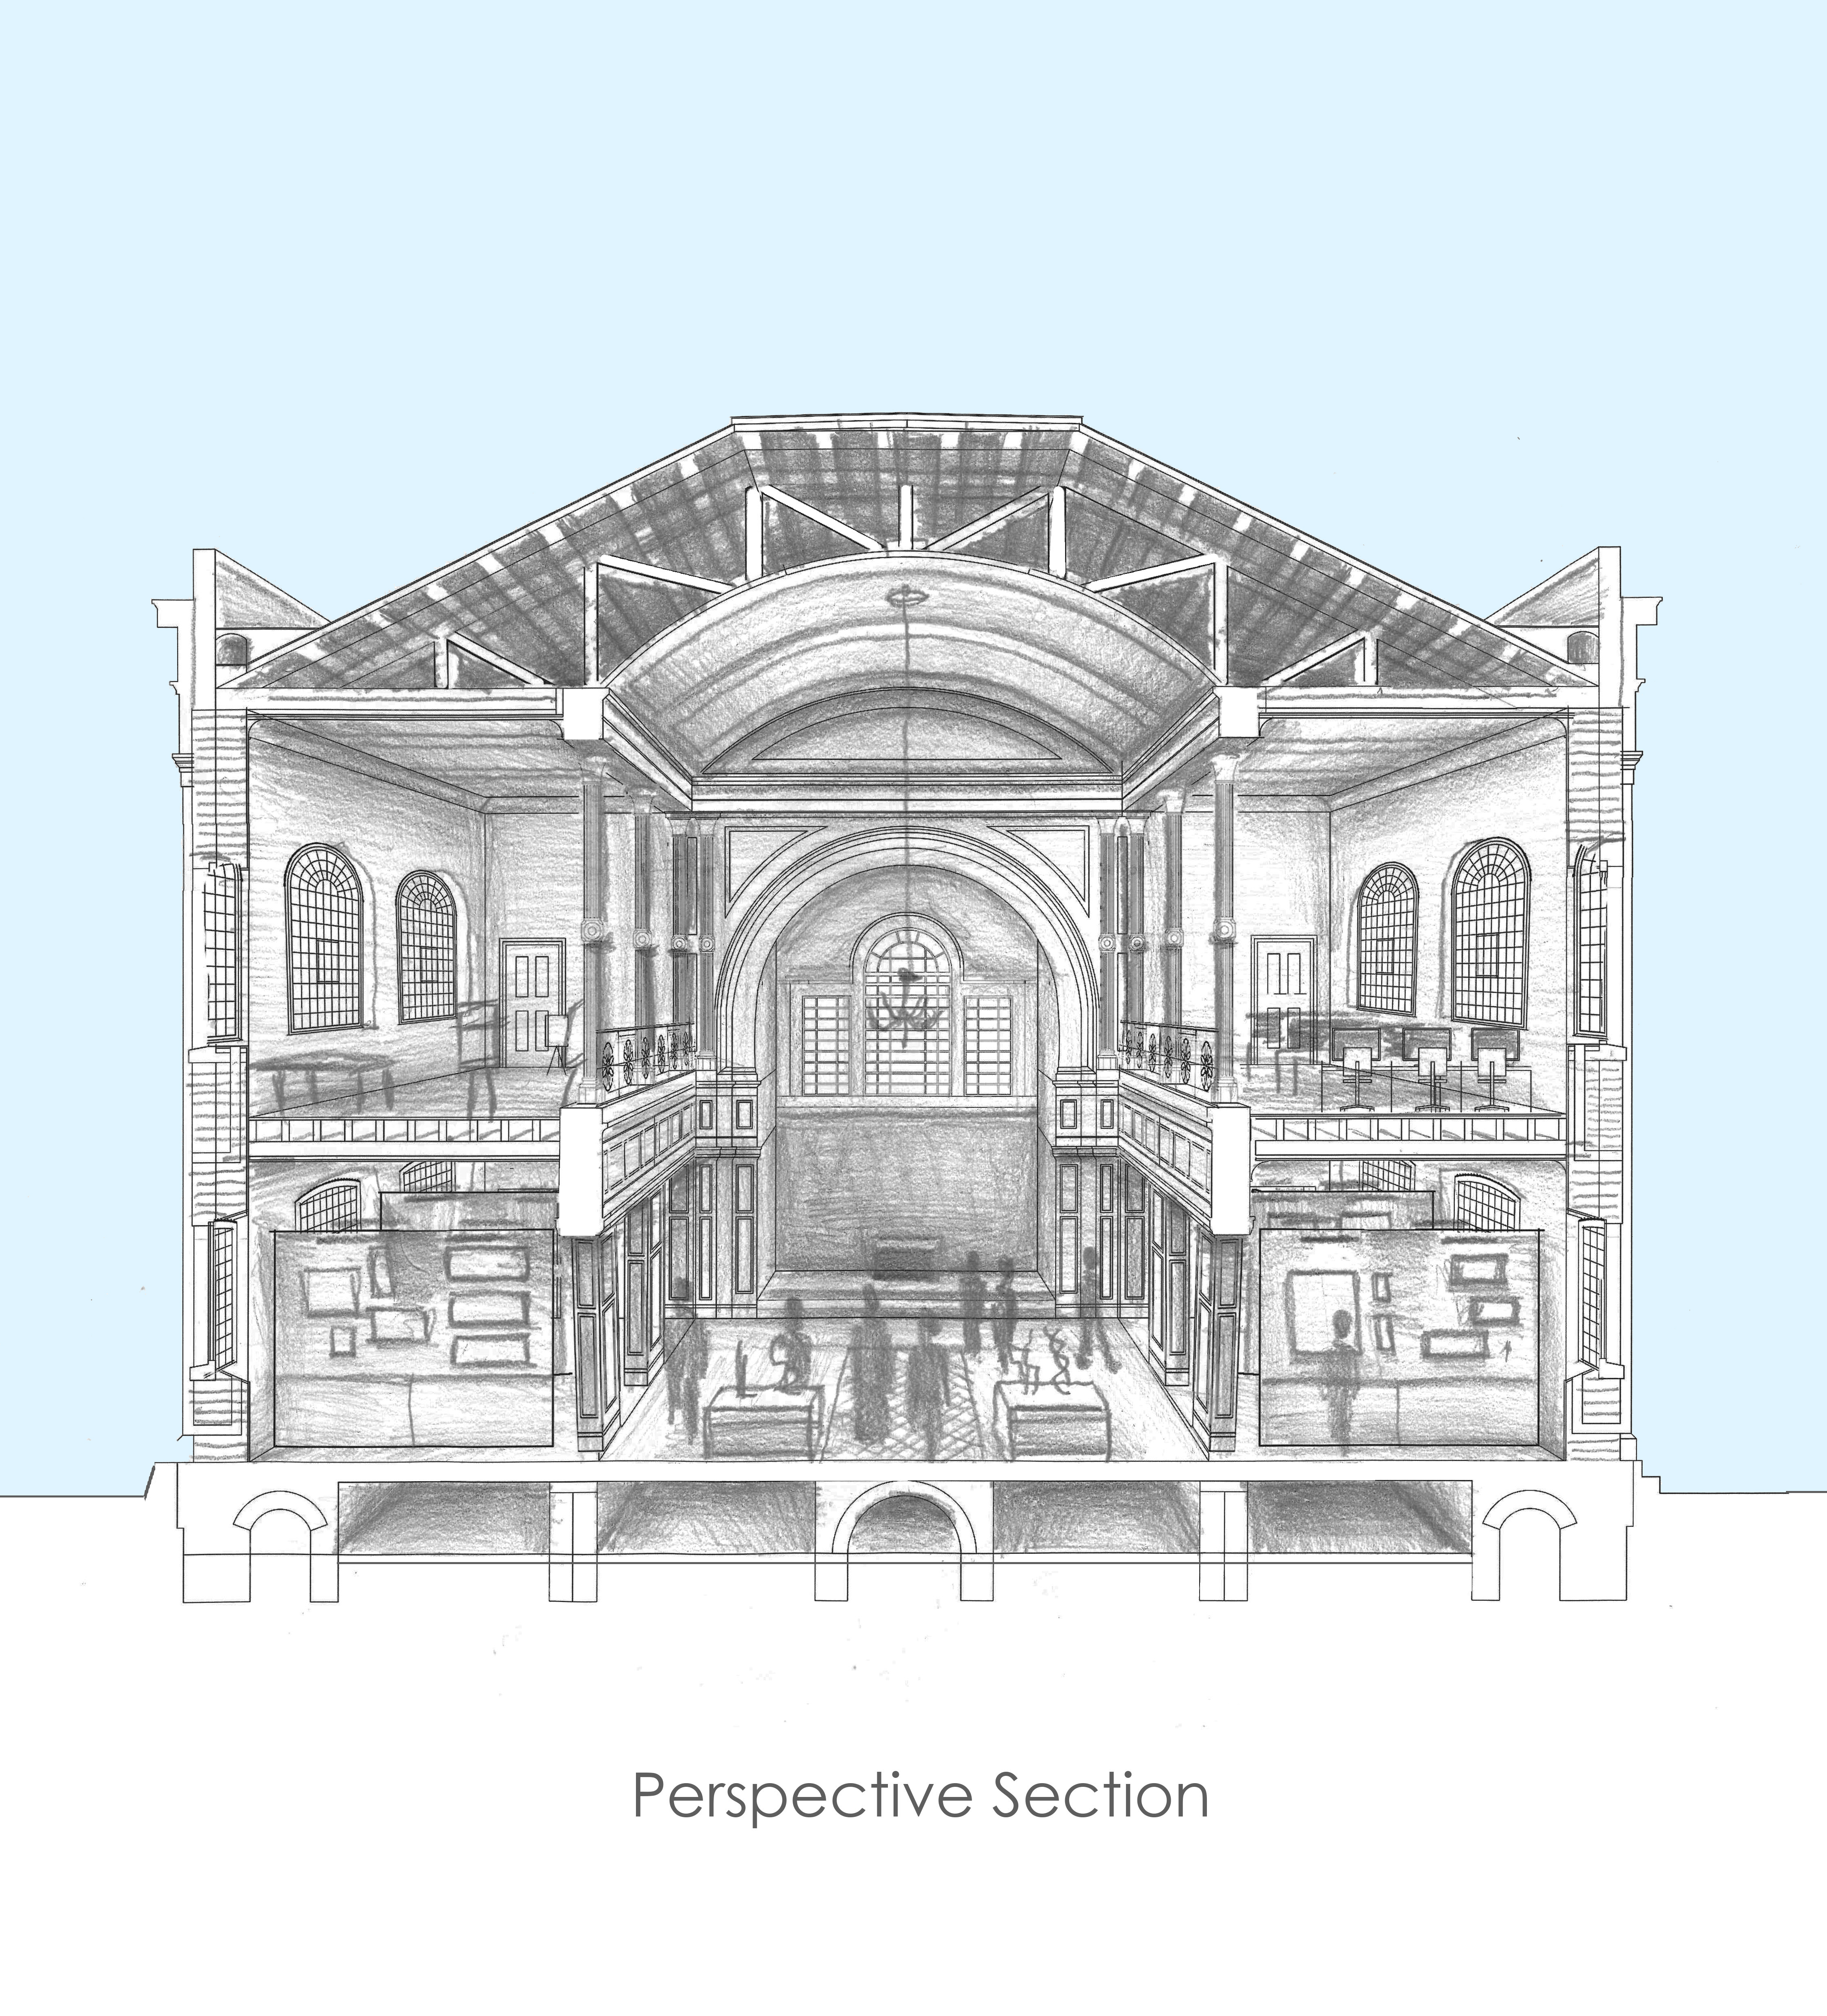 Reconstructed, cut-away perspective of the church